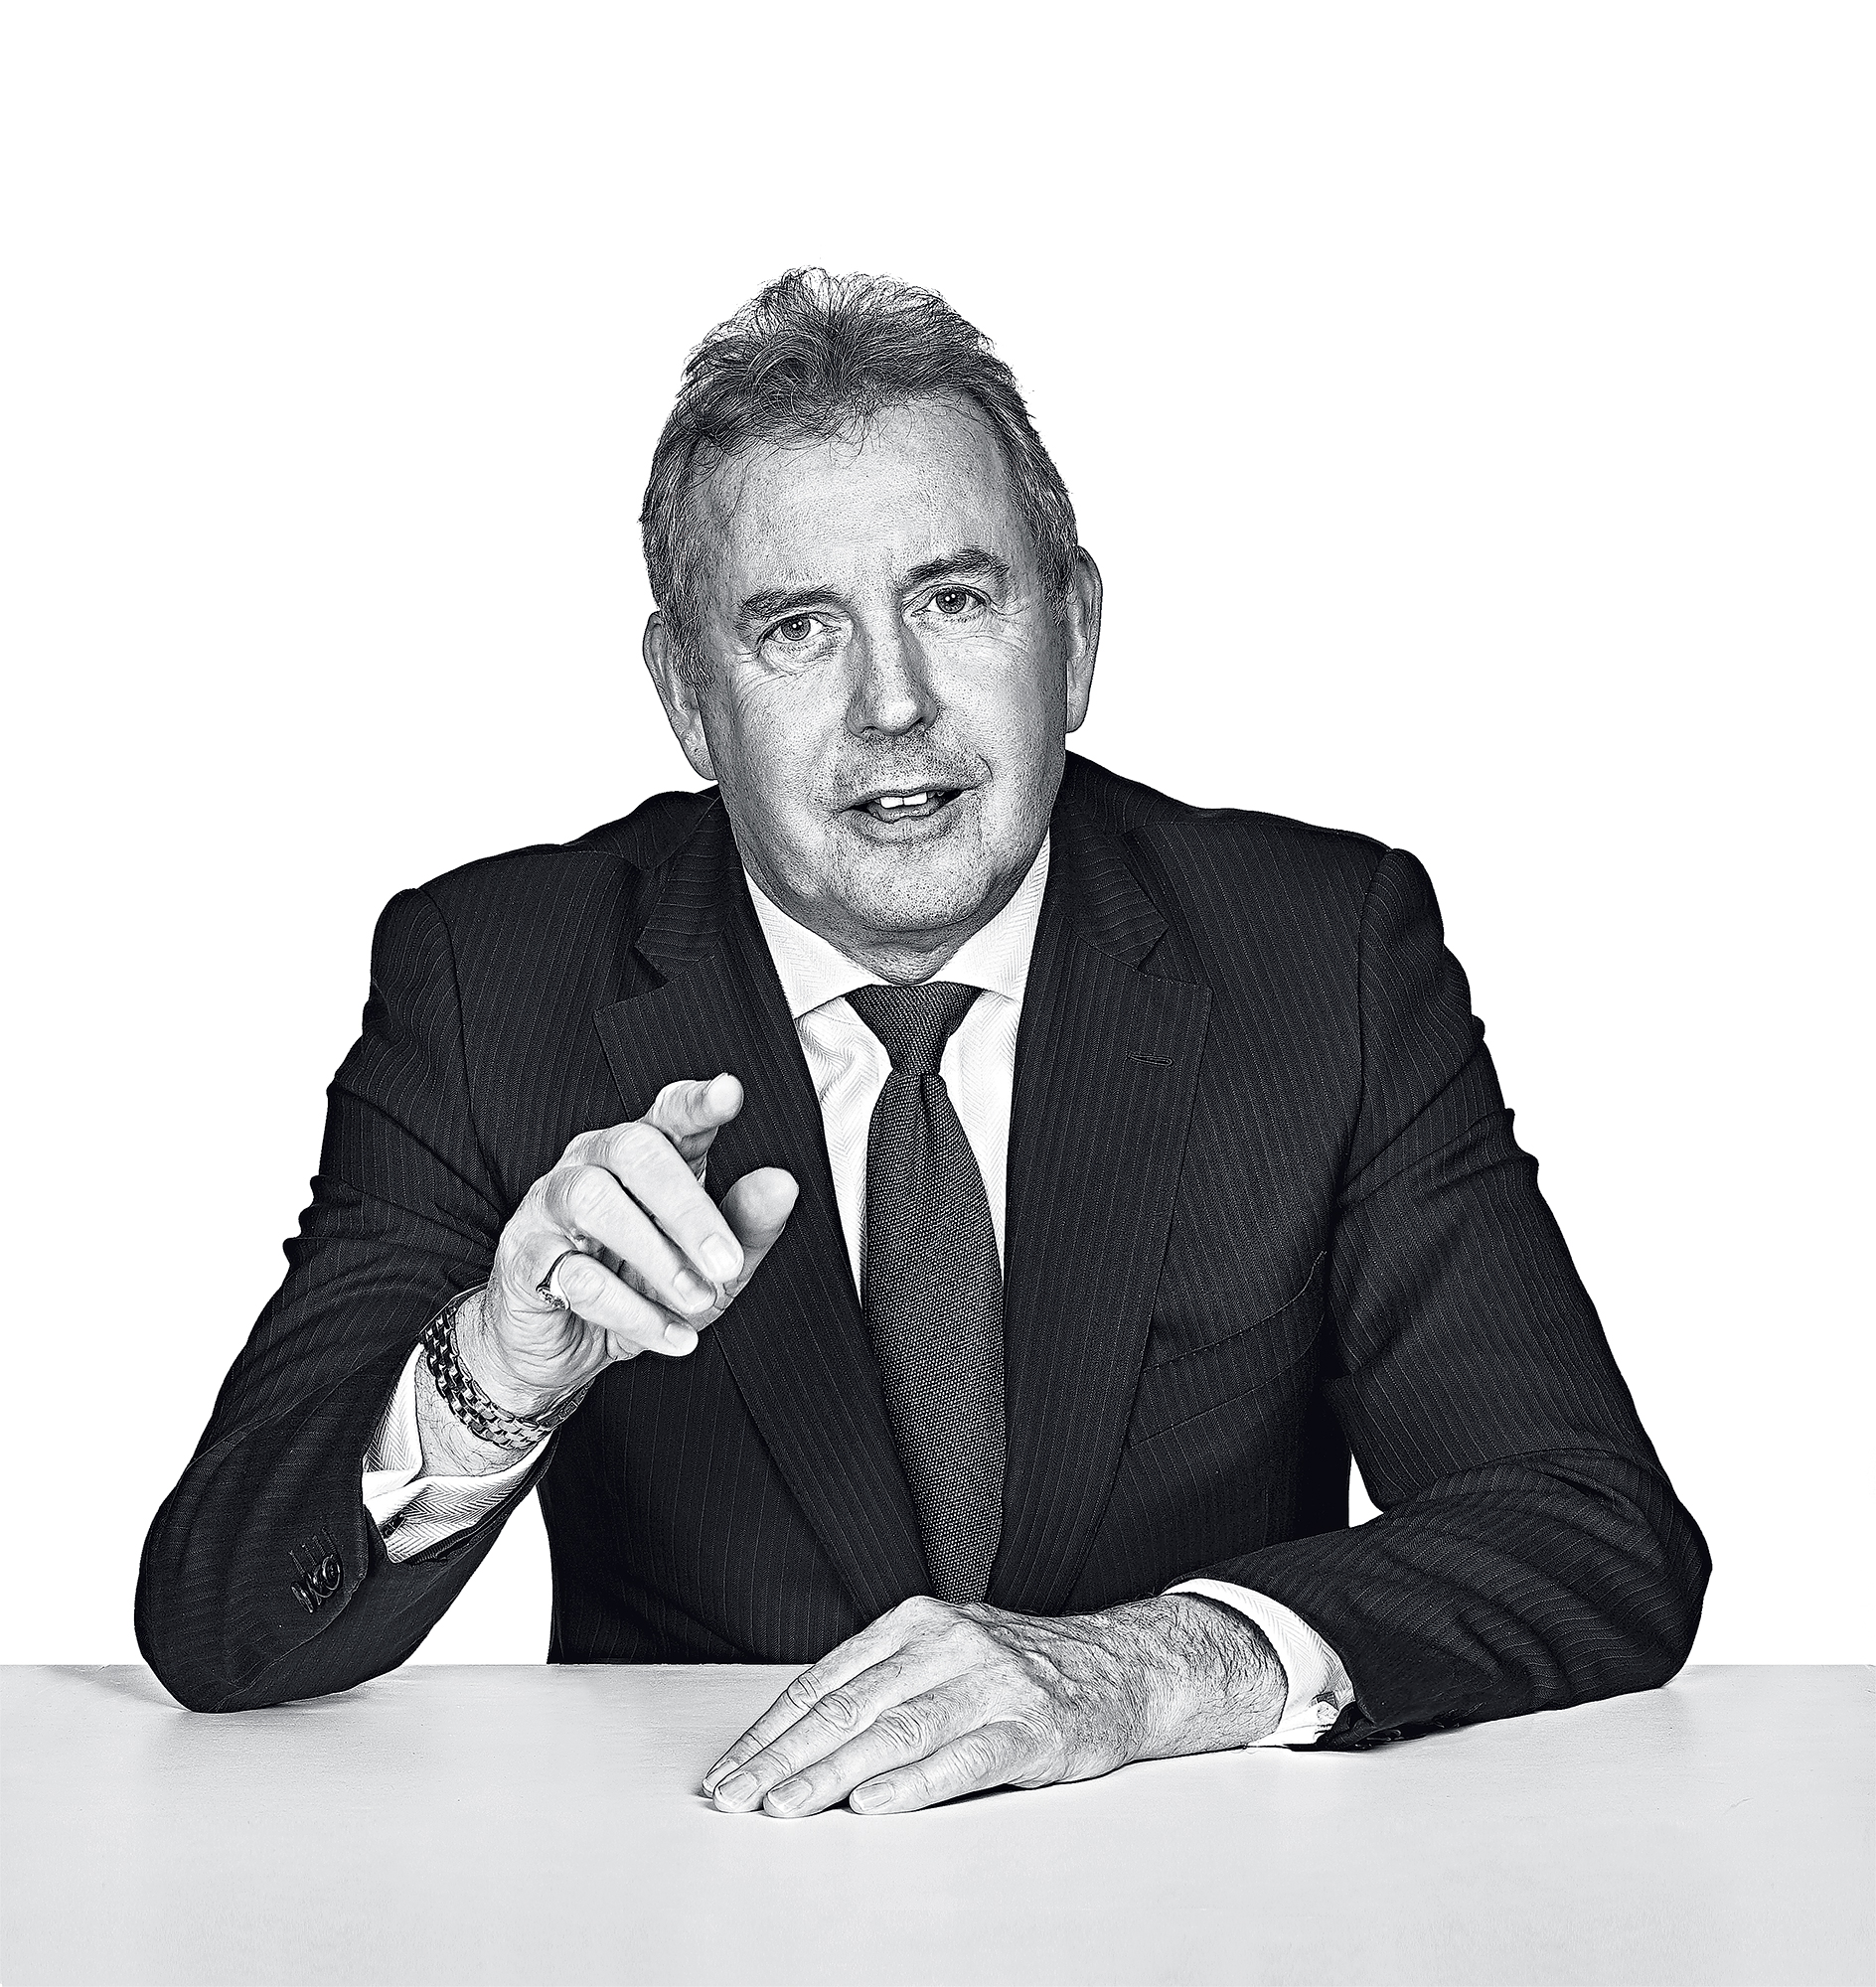 British ambassador Kim Darroch. Photograph by Jeff Elkins.